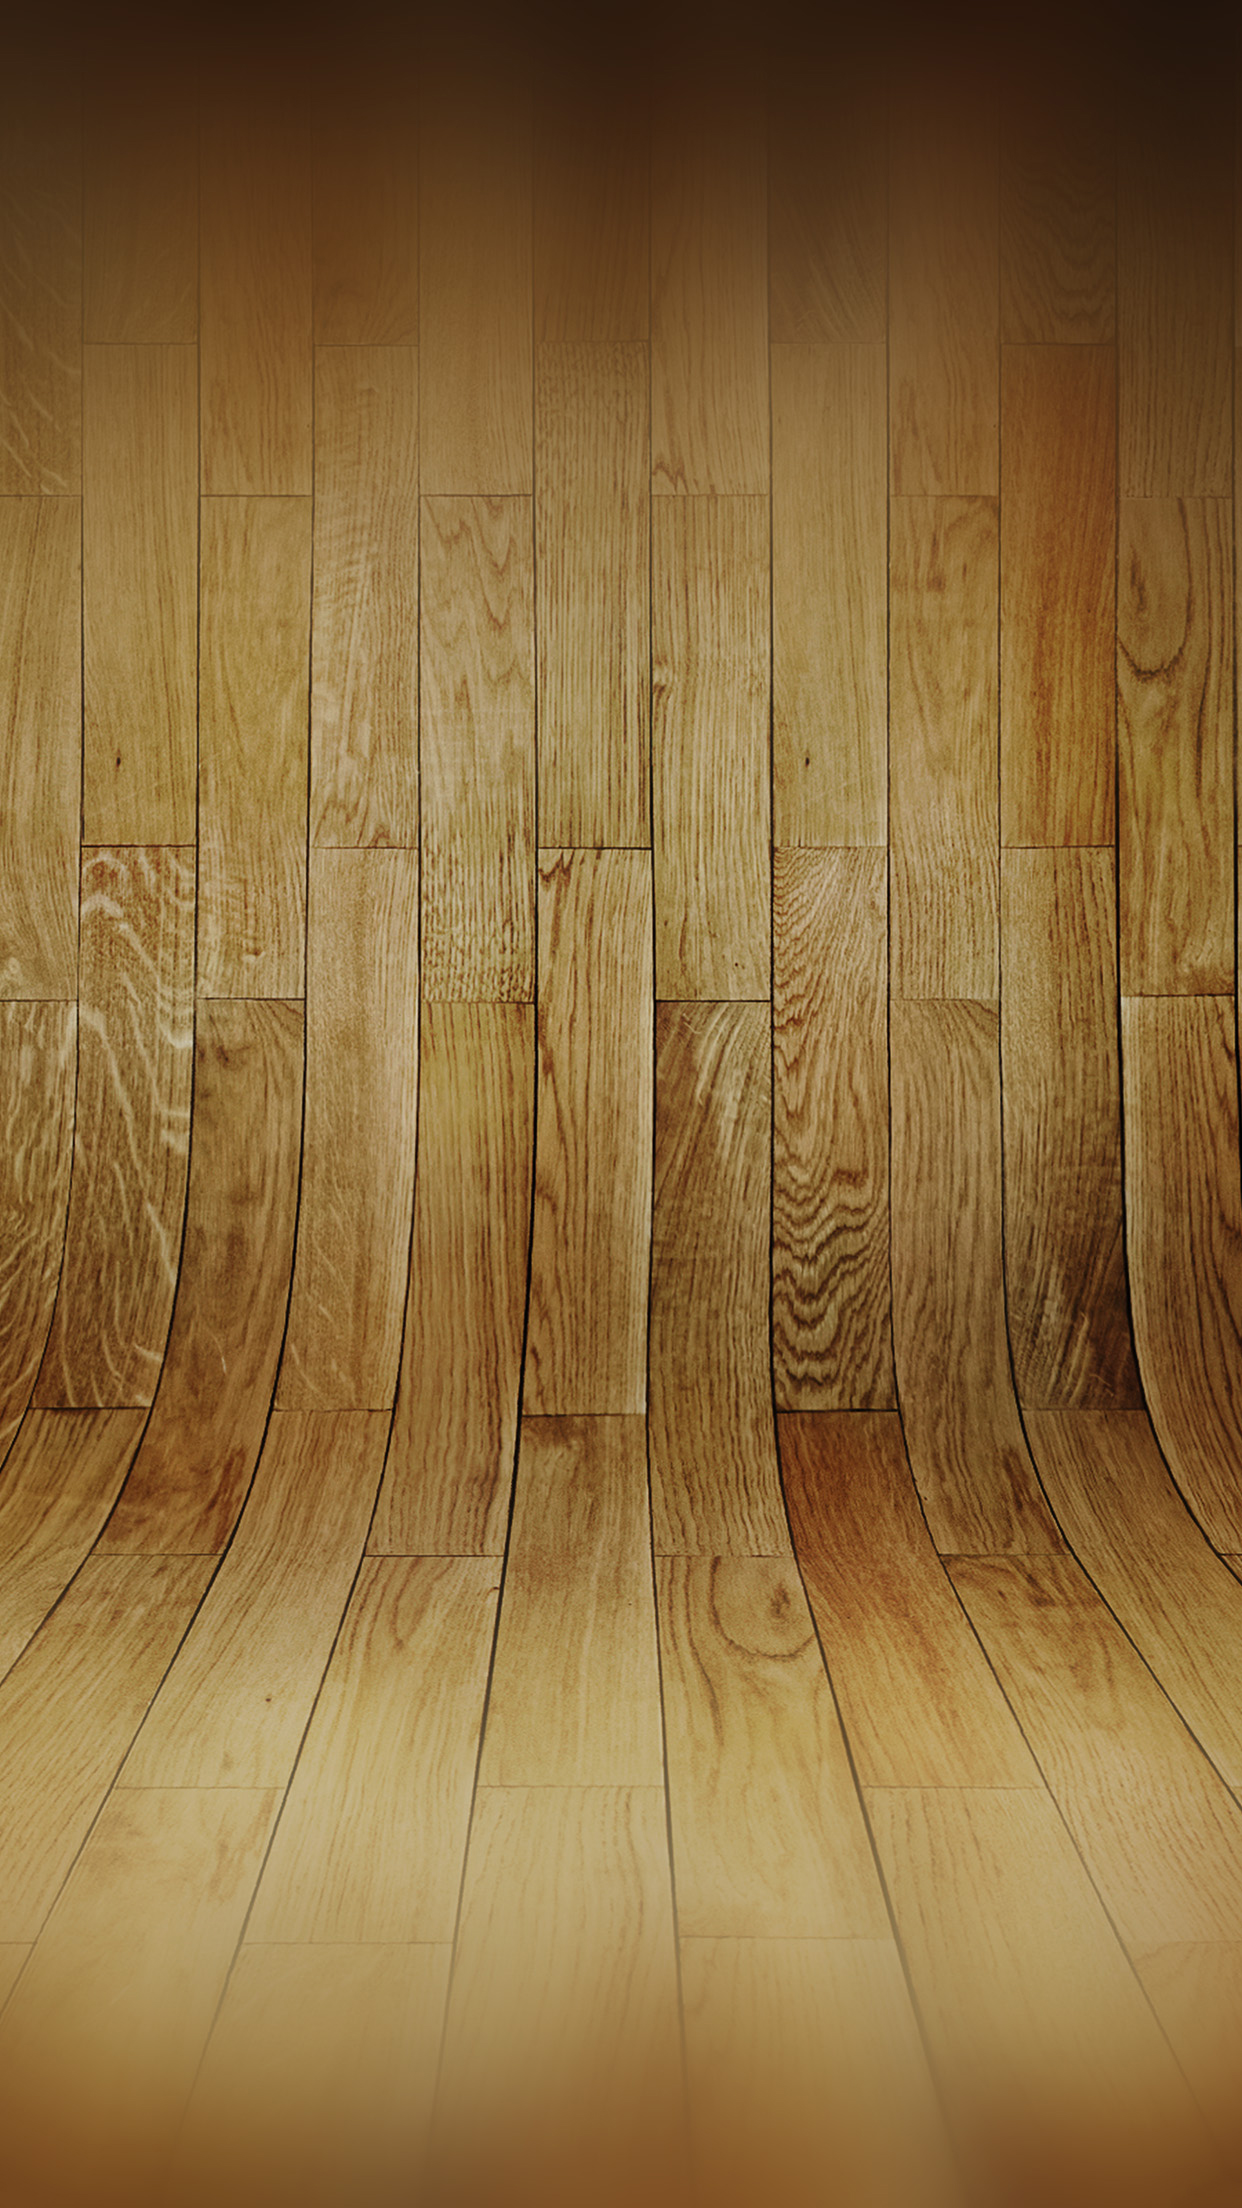 Wood Texture Background Curve Android Wallpaper free download